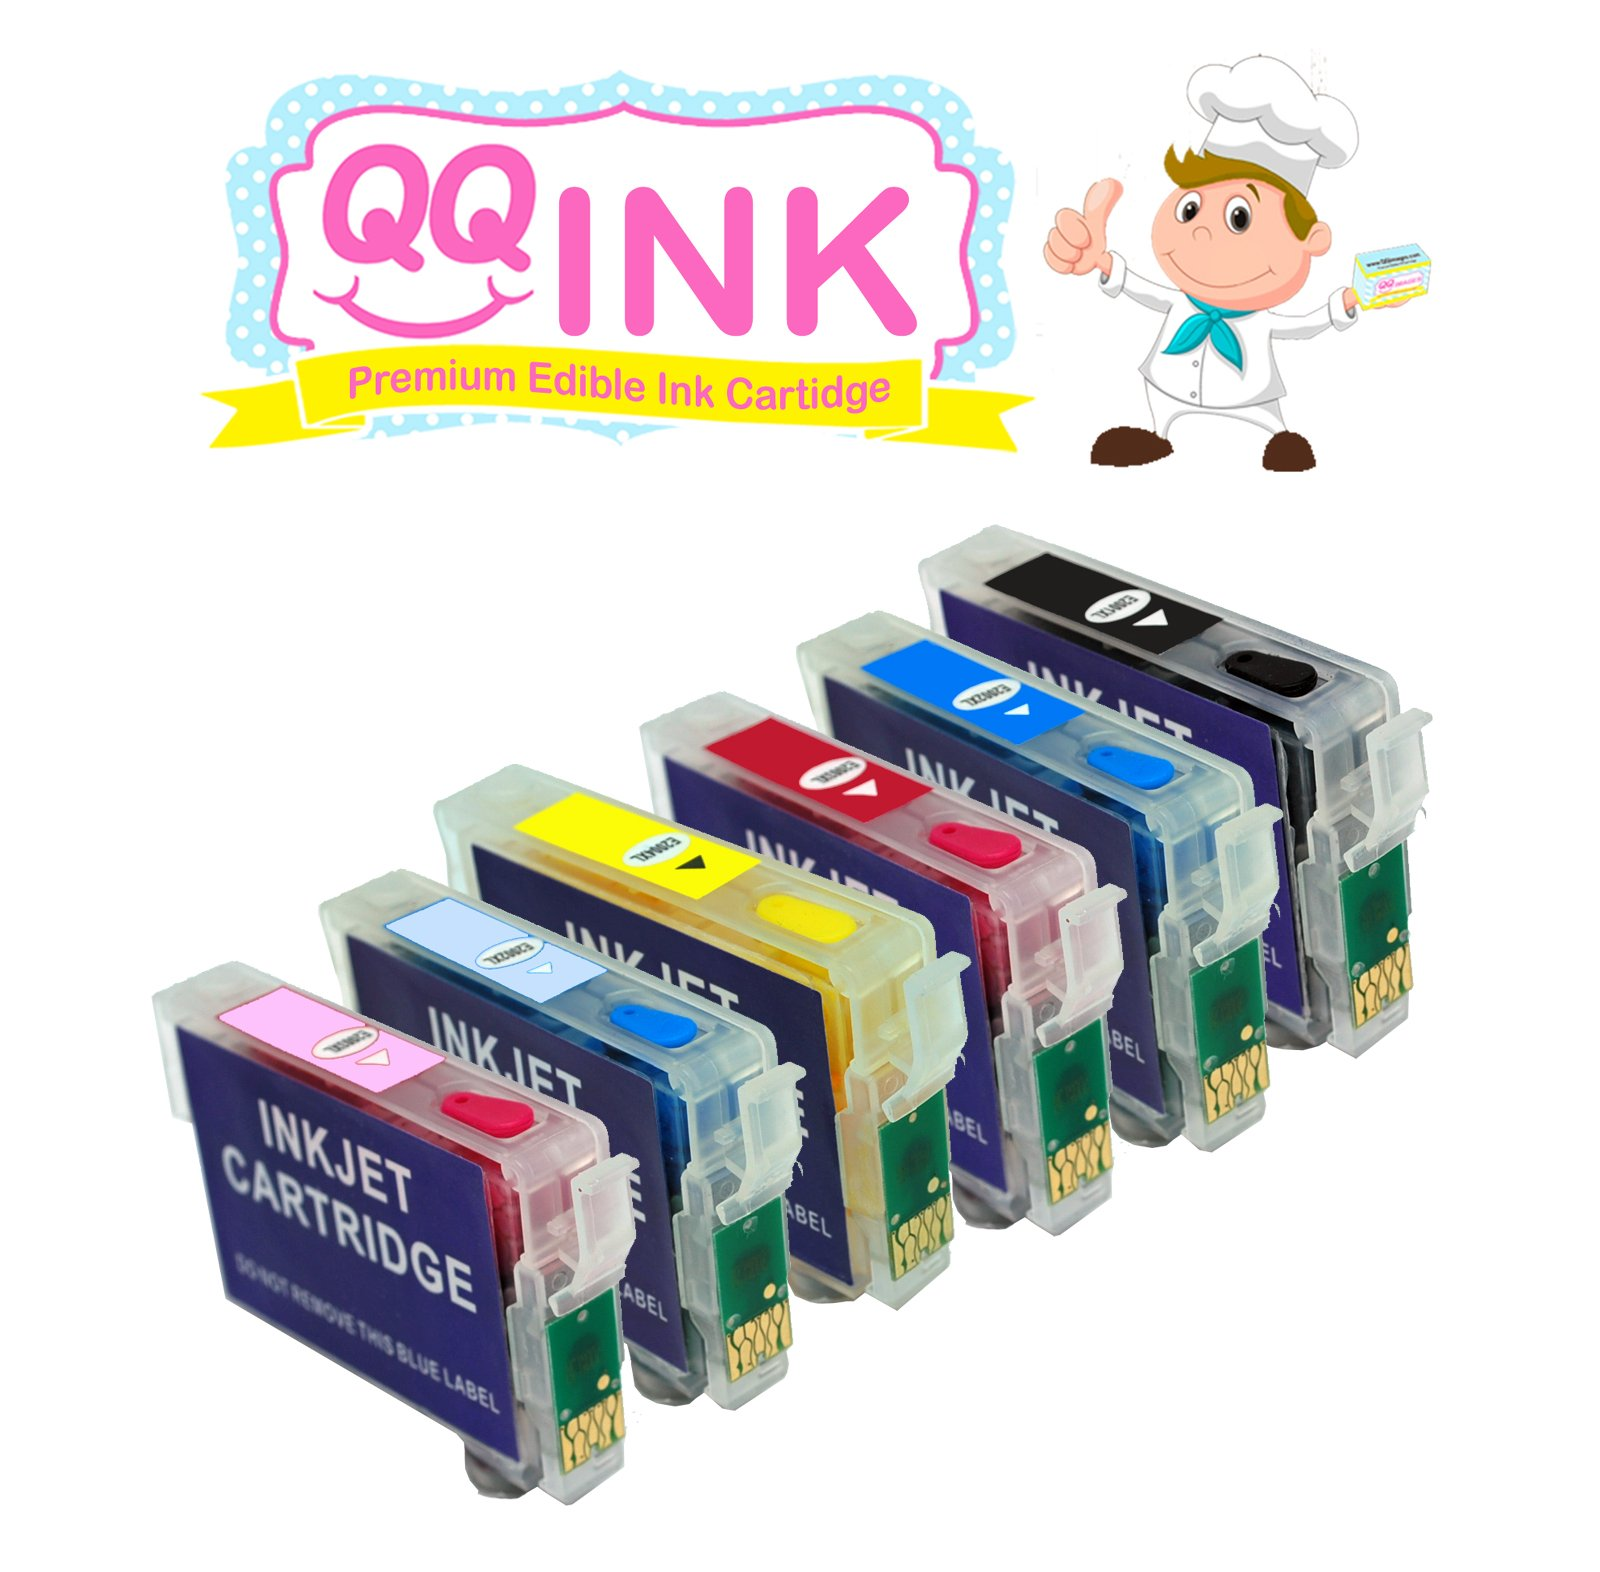 QQink Wide Format Cake Printer Bundle - Epson Printer comes with Edible Ink & Lucks Print Ons Edible Sheets by QQink (Image #2)